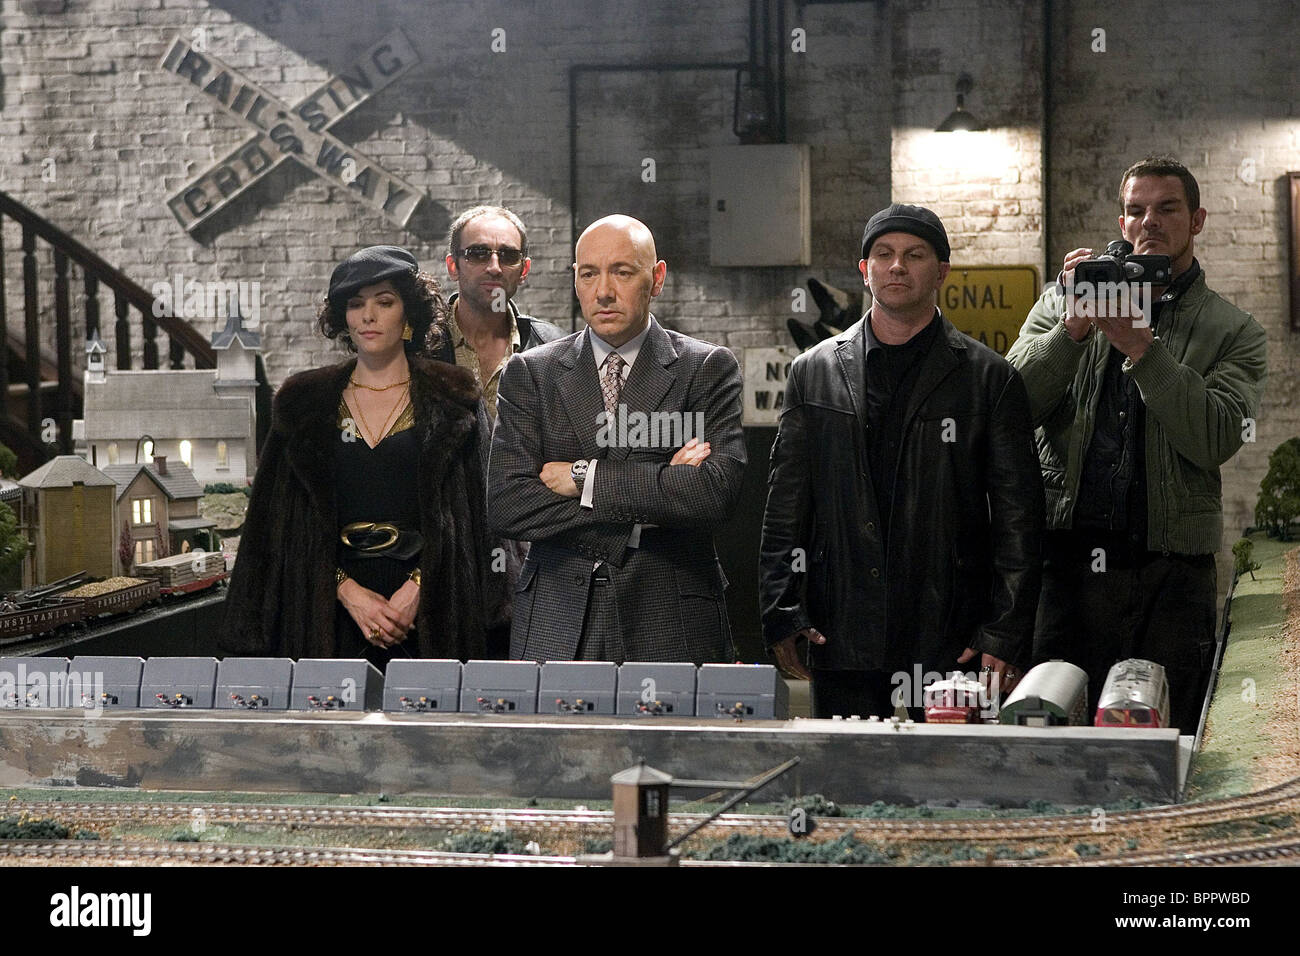 PARKER POSEY VINCENT STONE KEVIN SPACEY DAVID FABRIZIO & IAN ROBERTS SUPERMAN RETURNS (2006) - Stock Image